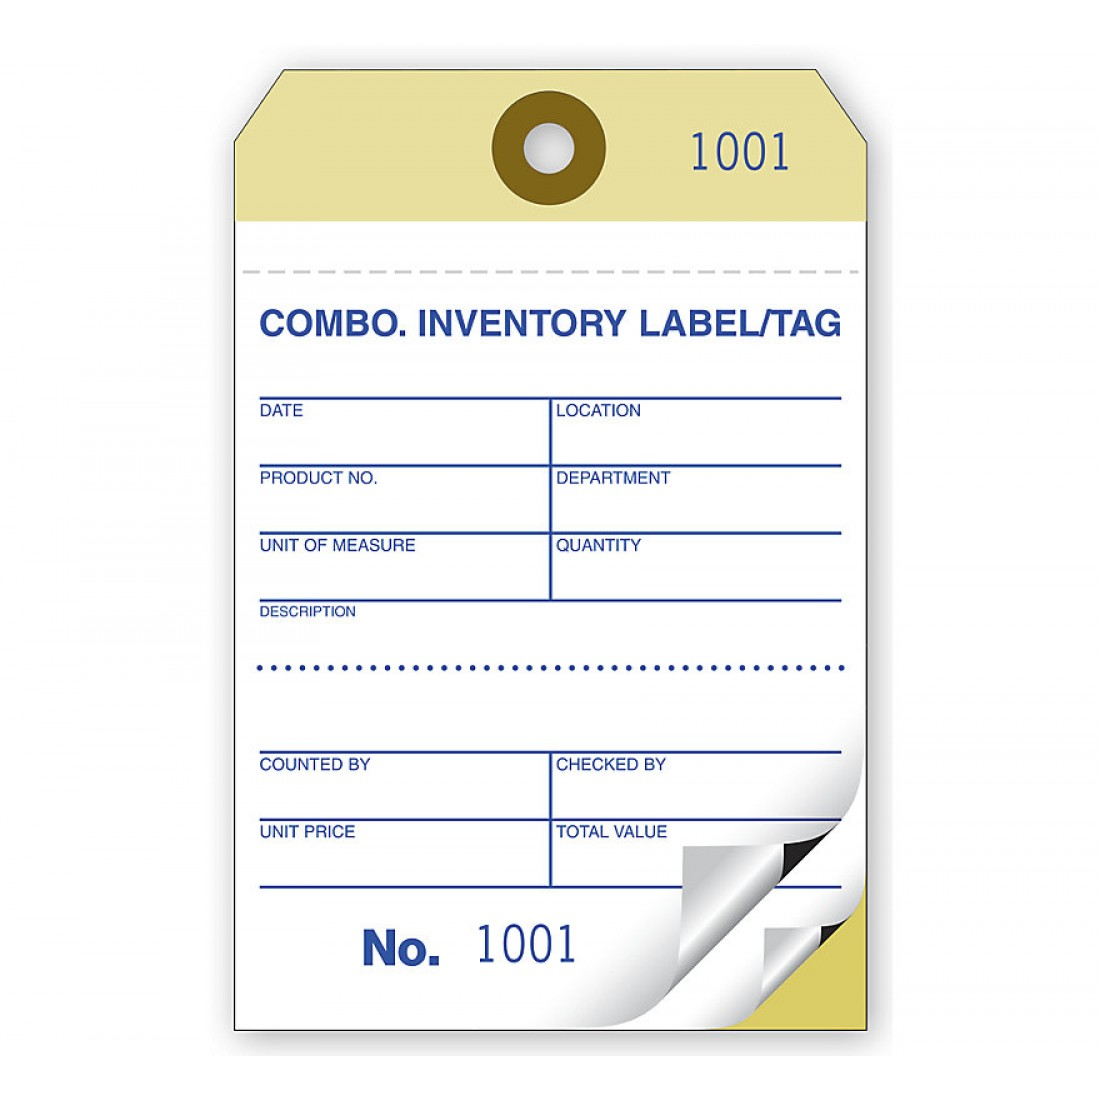 Medium Sized Inventory Tags